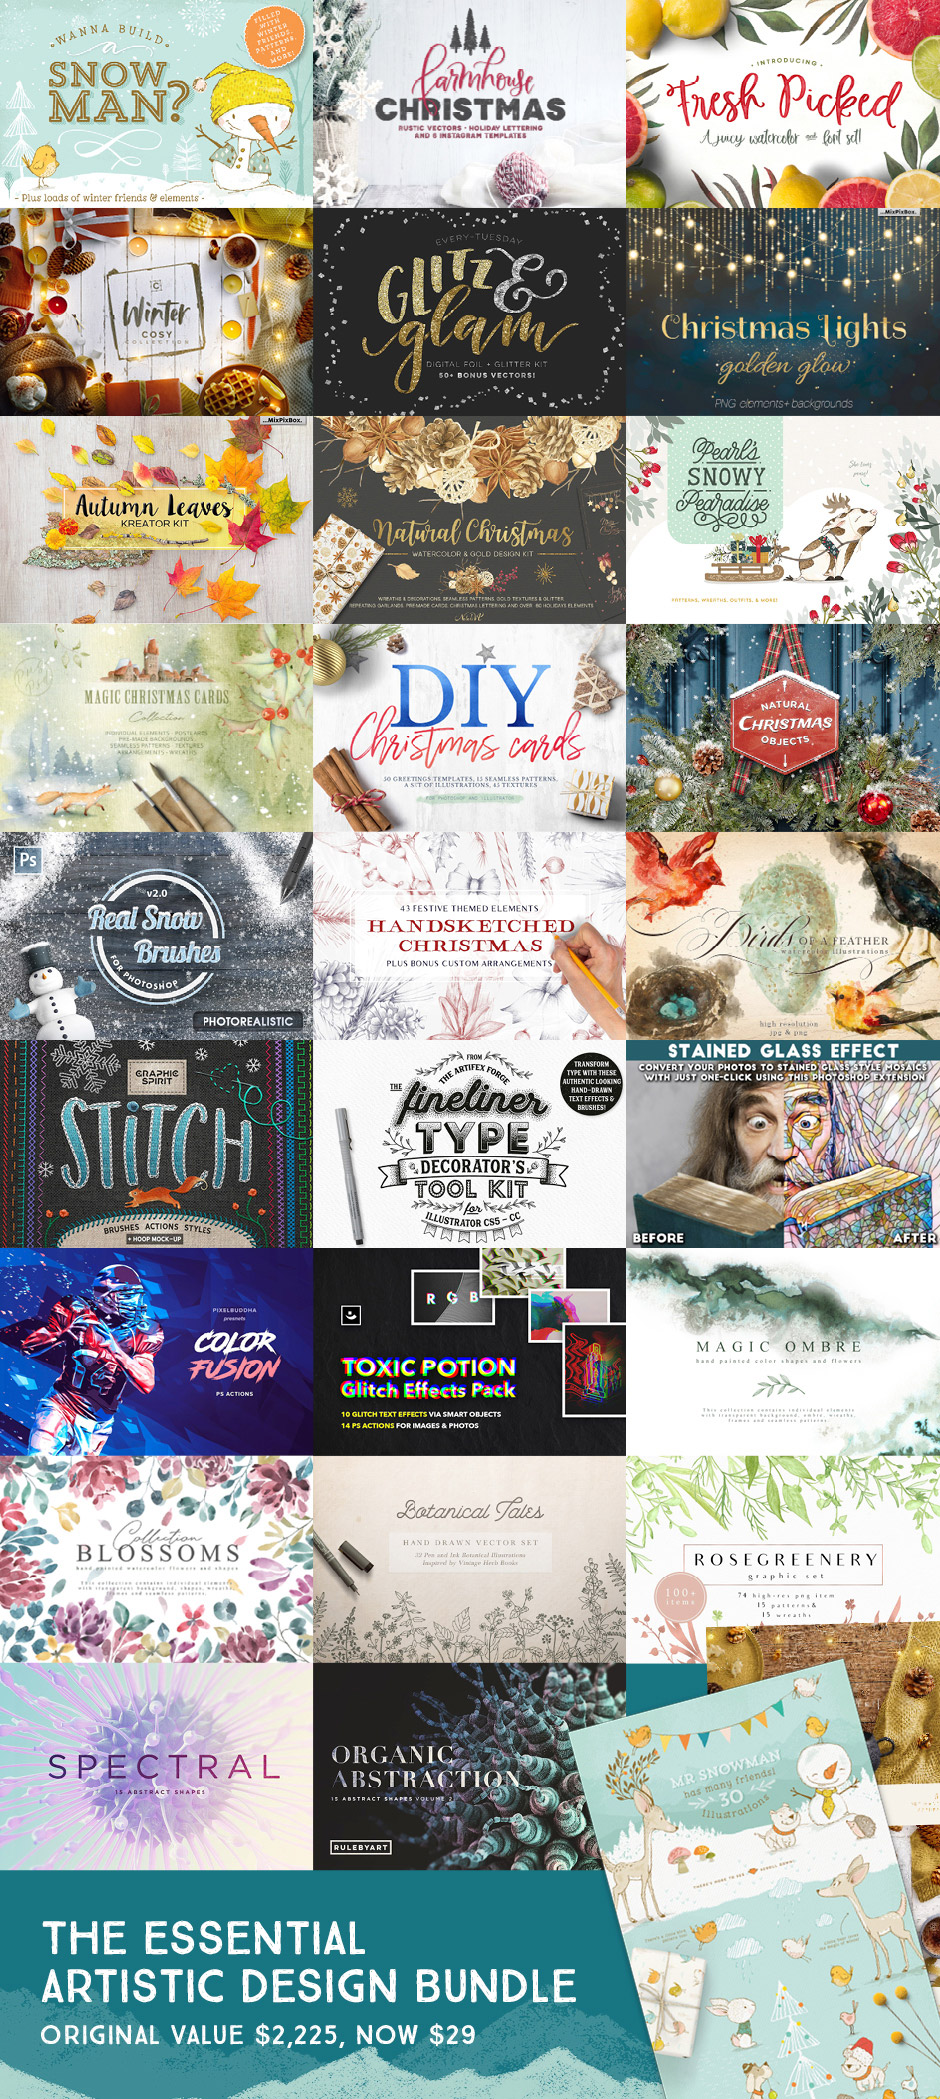 Essential Artistic Design Bundle